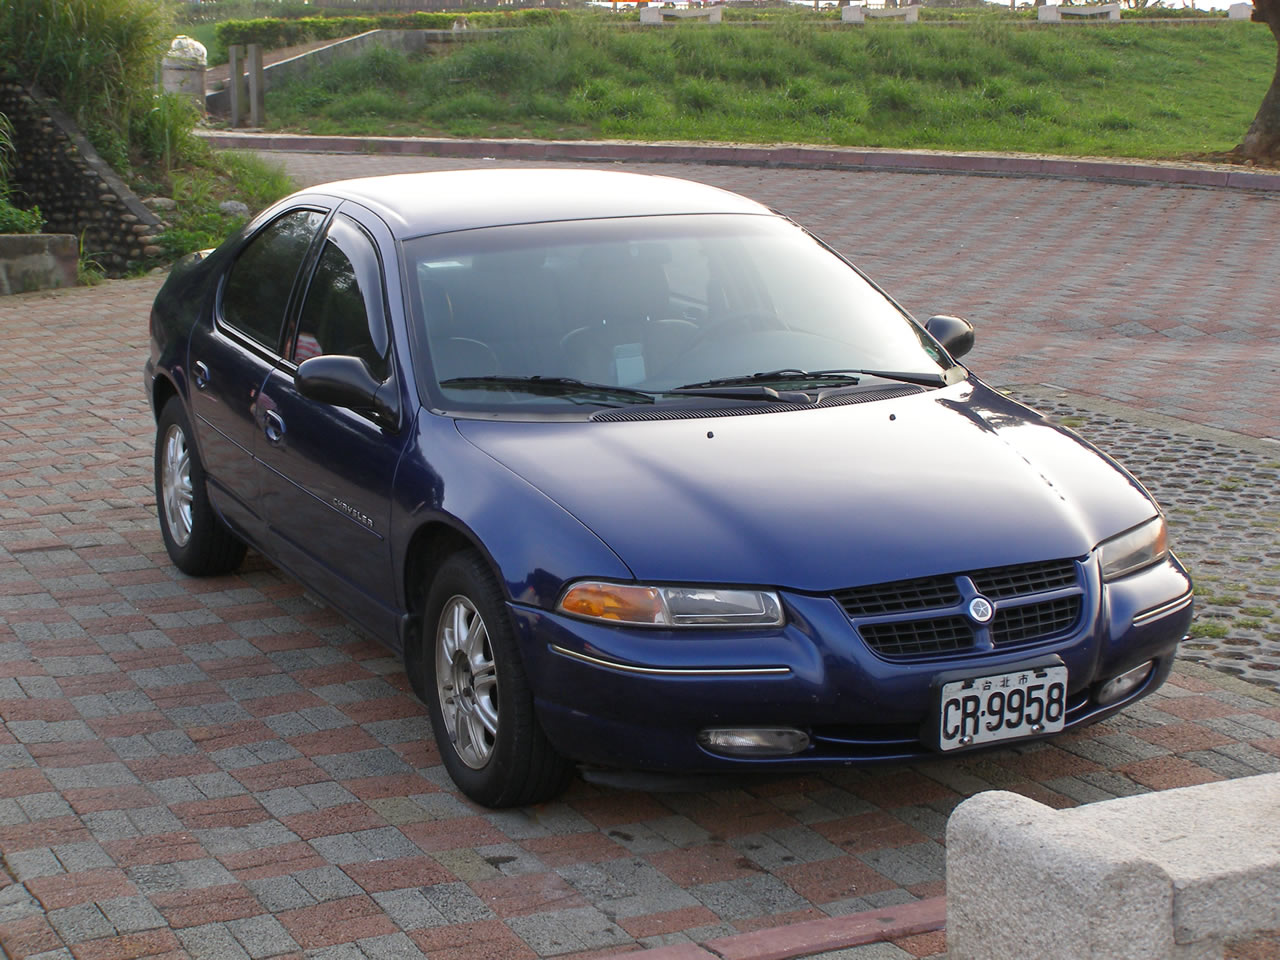 1997 Chrysler Cirrus #1